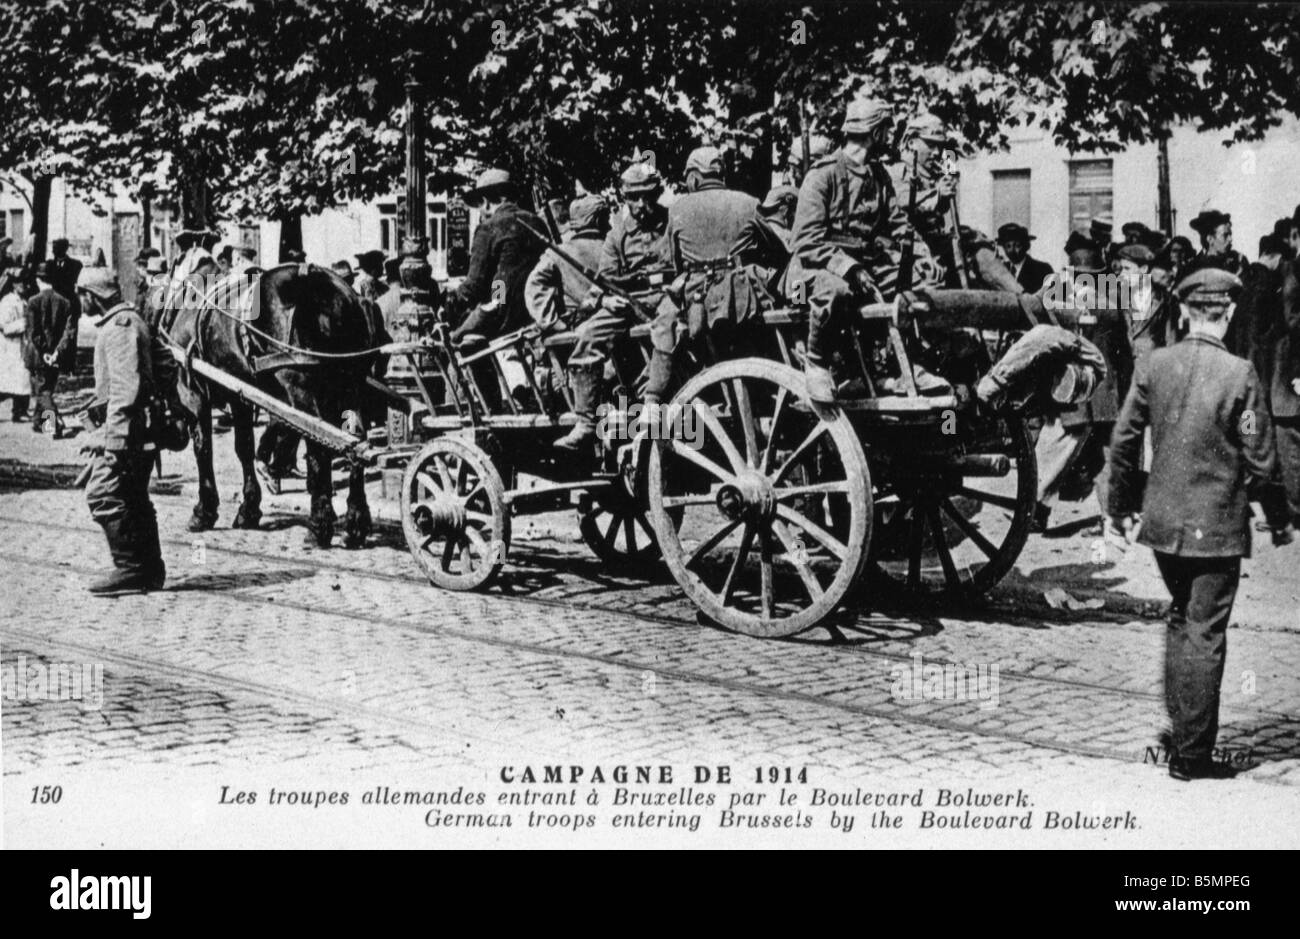 9 1914 8 20 A1 E WW1 Invasion of Ger troops in Brussels World War 1 Western Front Invasion of German troops in Brussels - Stock Image